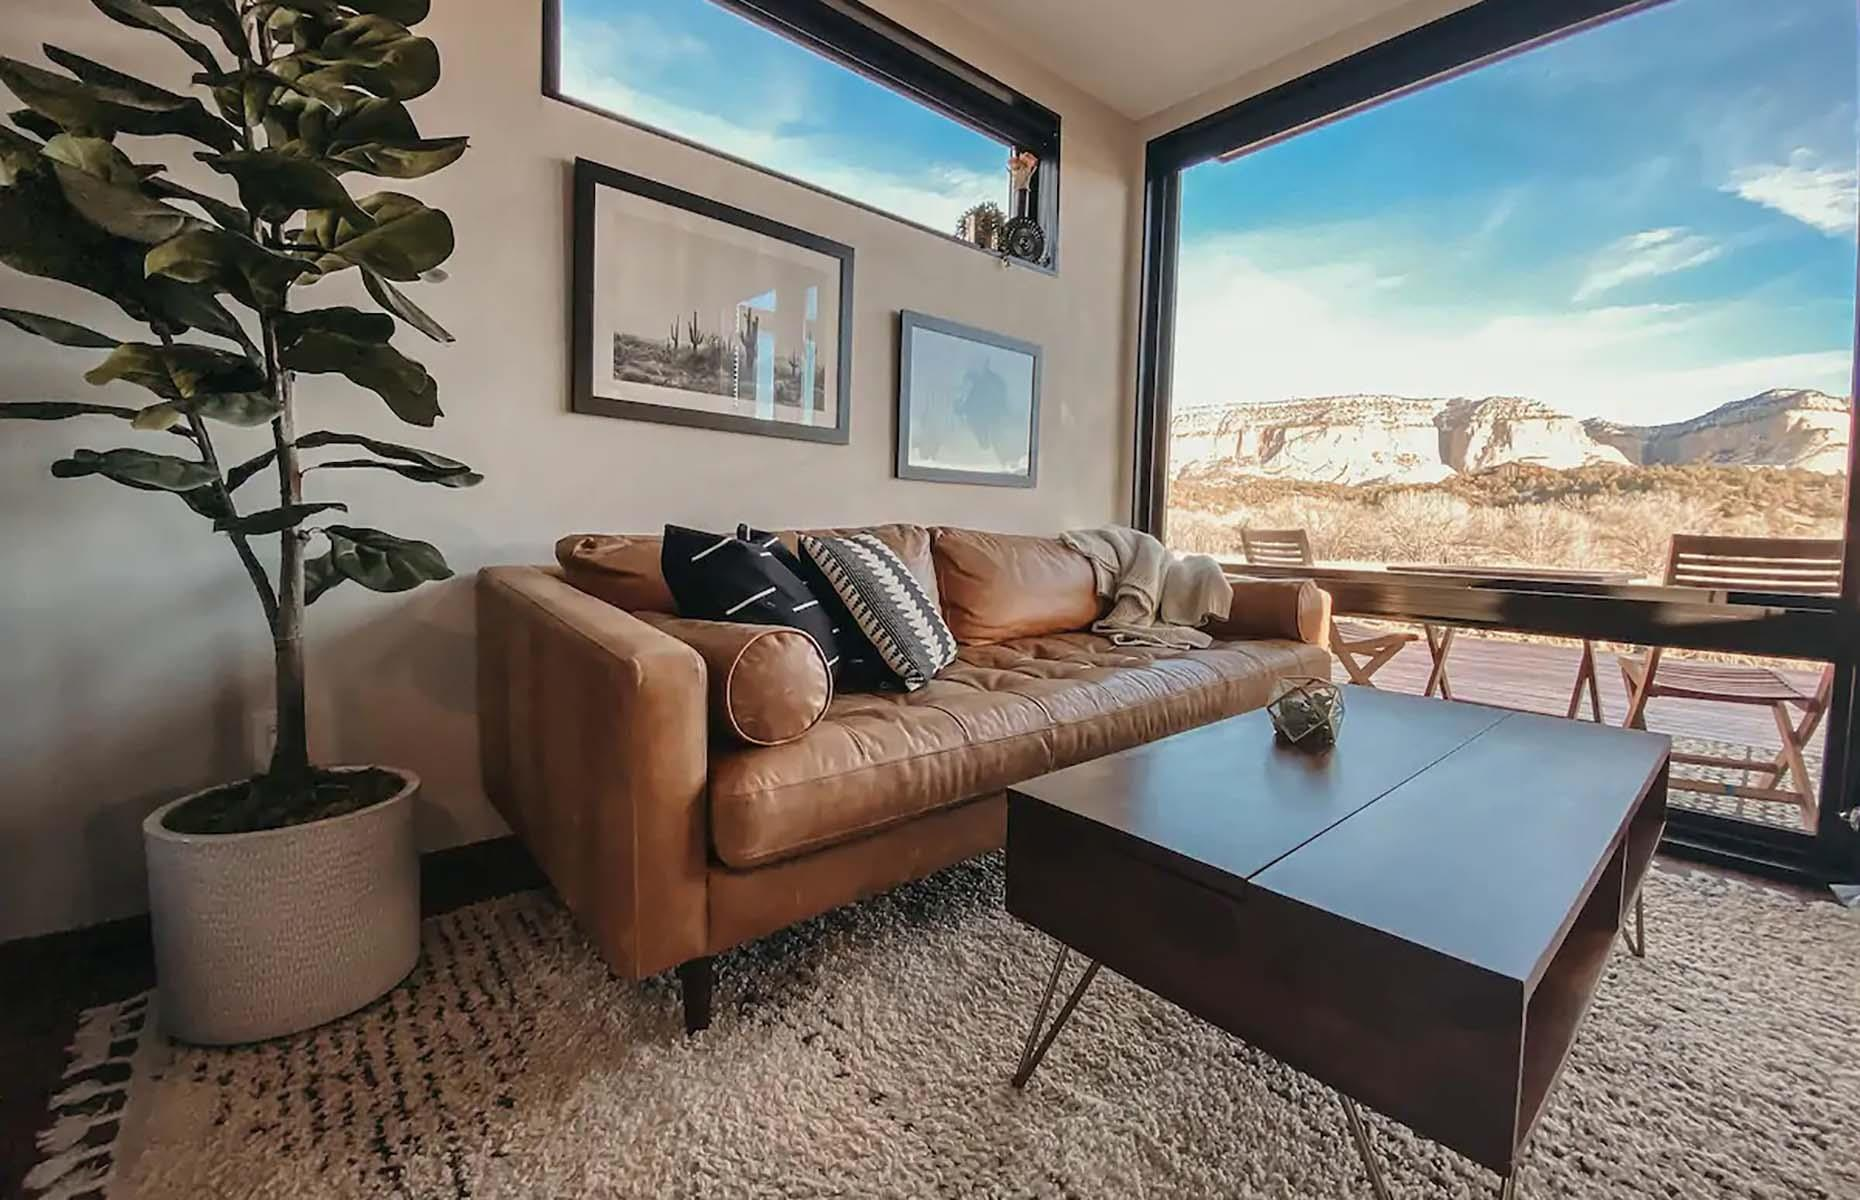 Slide 25 of 31: An incredibly stylish space with an equally impressive view to match, this tiny house in Utah is unforgettable. Accessible from the Scenic Highway 89, the home's picture windows open up to scenery of the soaring Elkhart Cliffs. The studio features a huge walk-in shower, fully-equipped kitchen and a queen-sized bed.